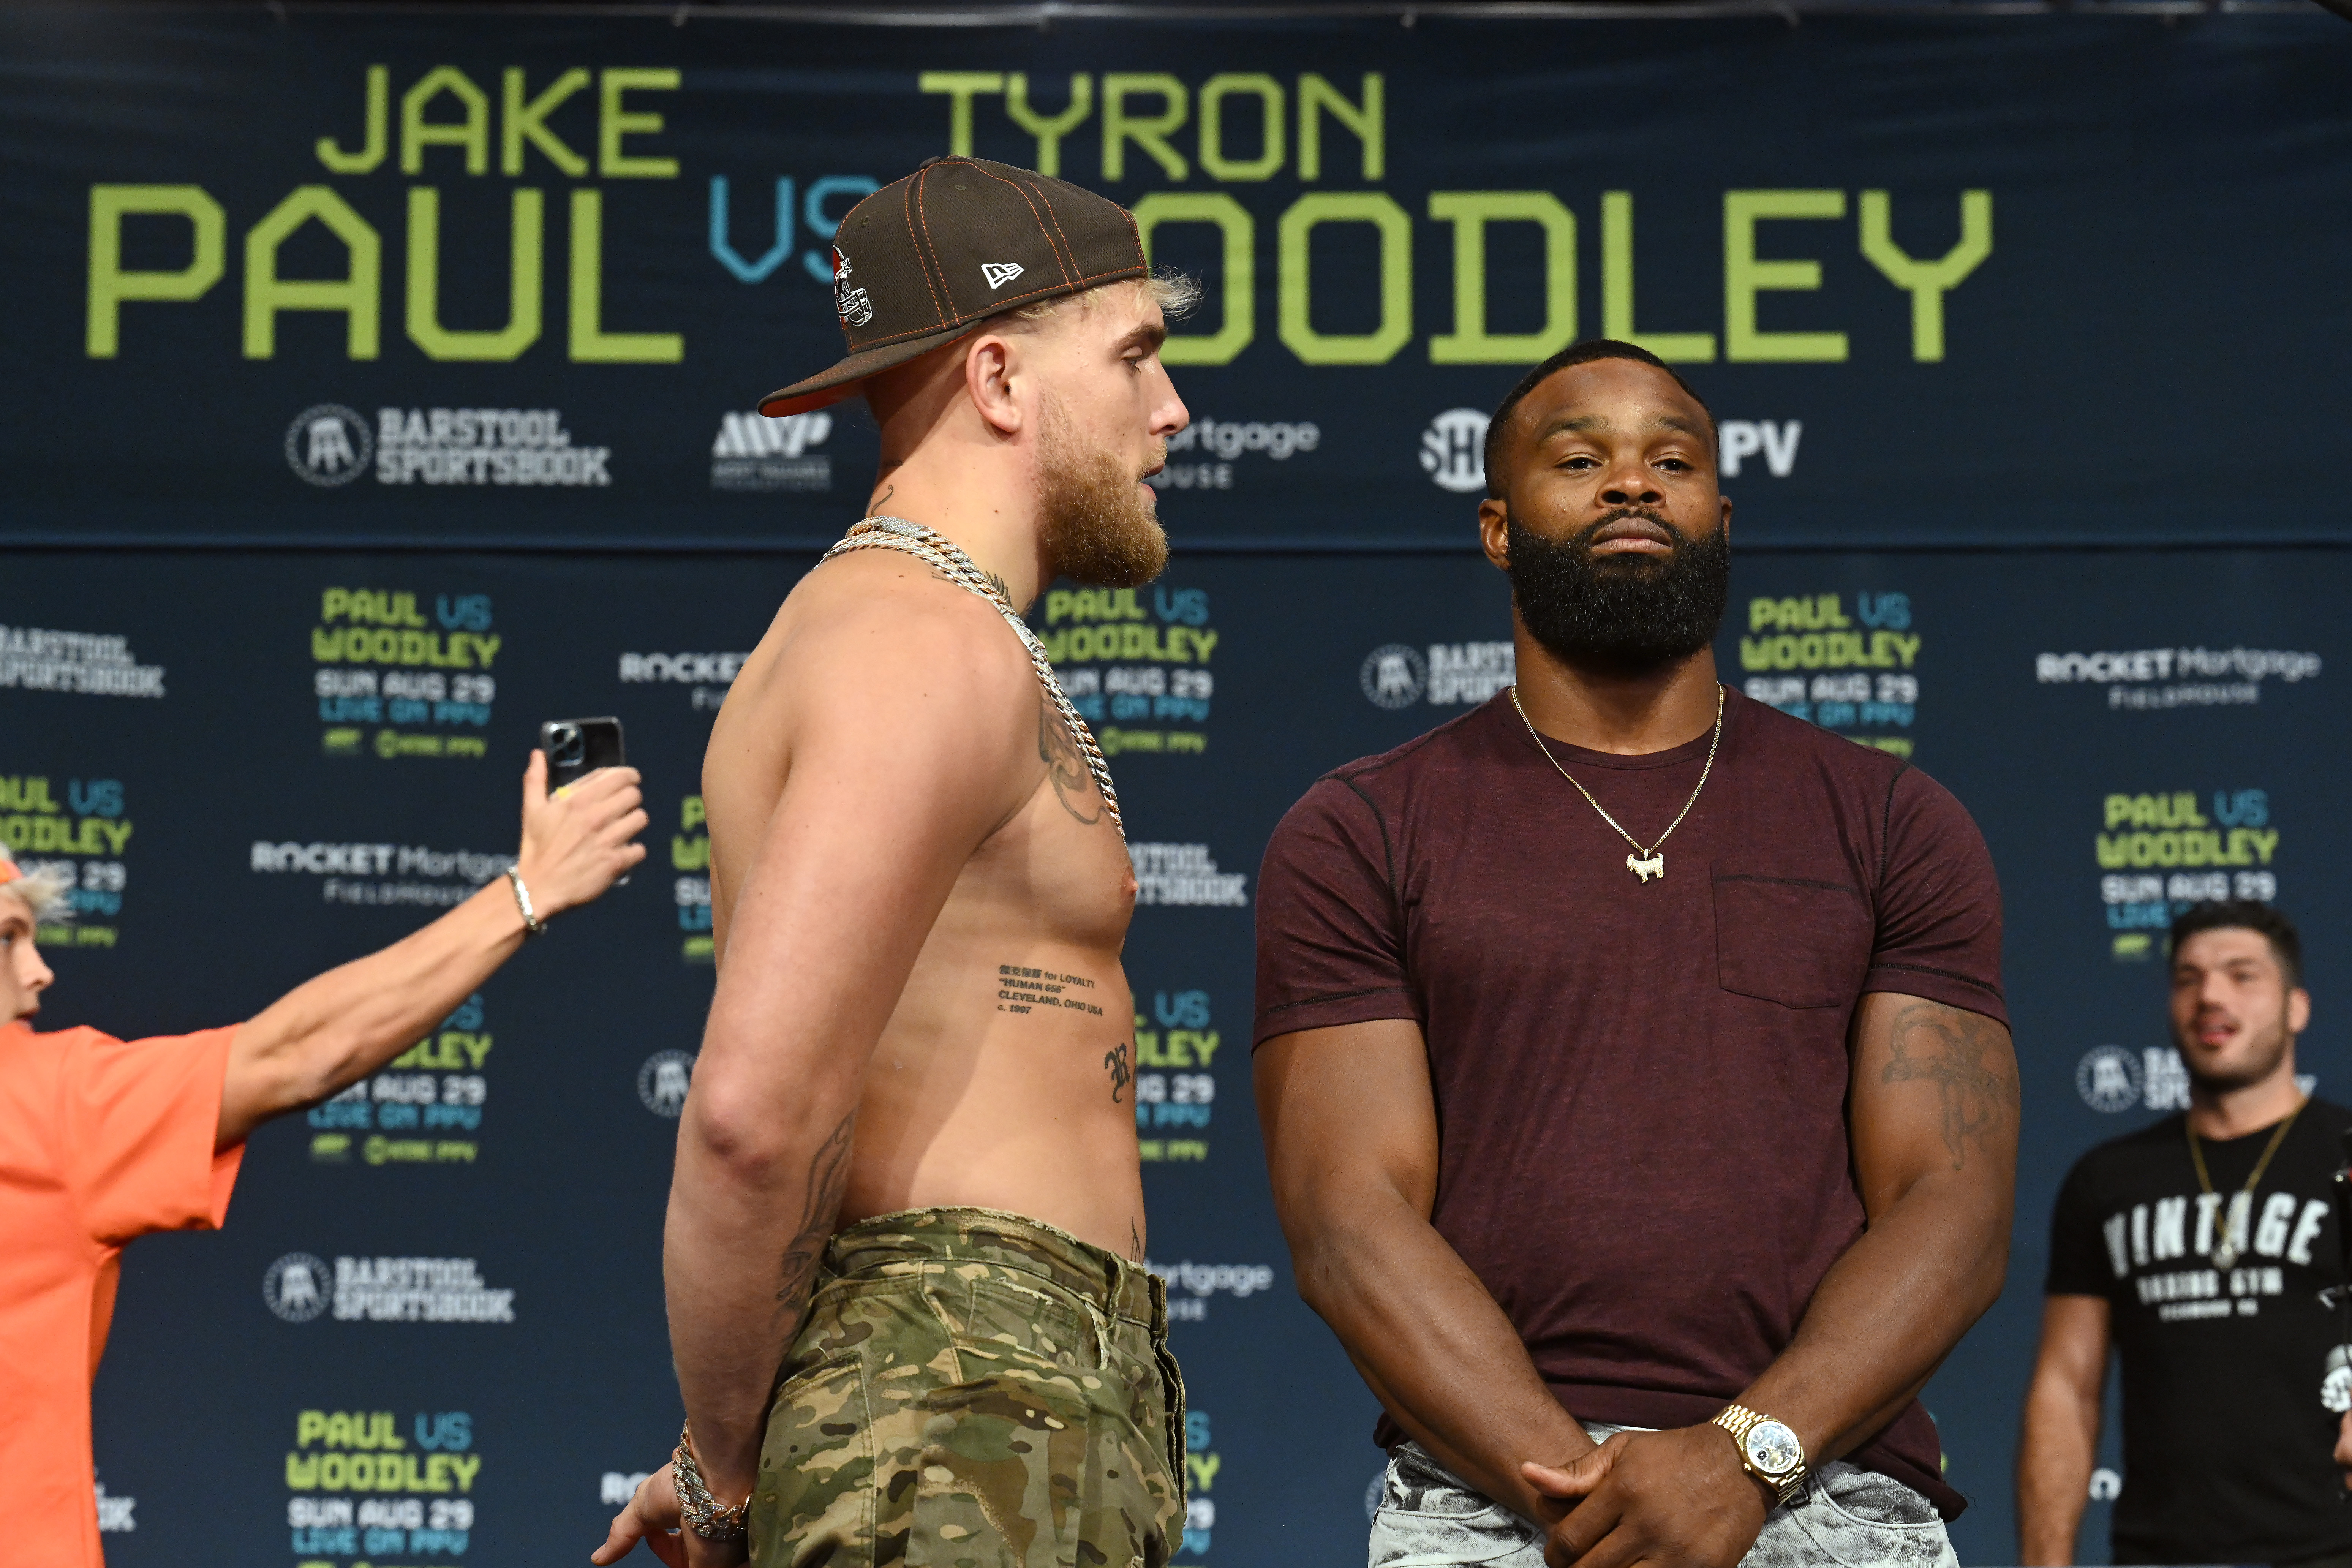 Jake Paul and Tyron Woodley pose during a press conference at the Hilton Cleveland Downtown prior to their August 29 fight on August 26, 2021 in Cleveland, Ohio.